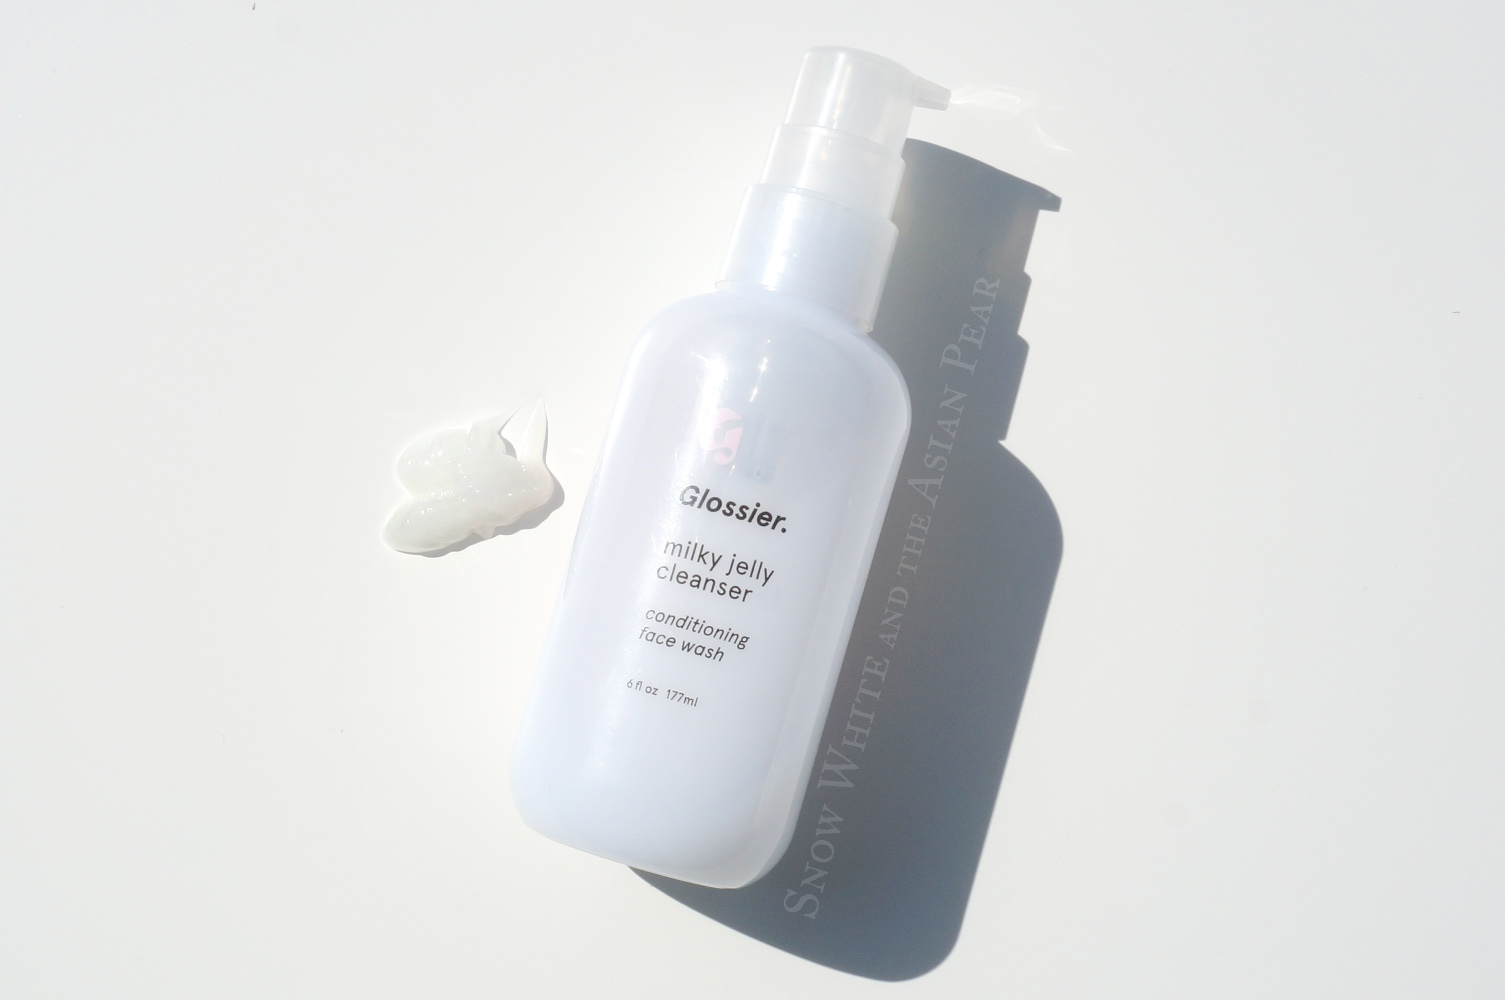 Glossier Milky Jelly Cleanser Review: We Tried, But It's Time to ...